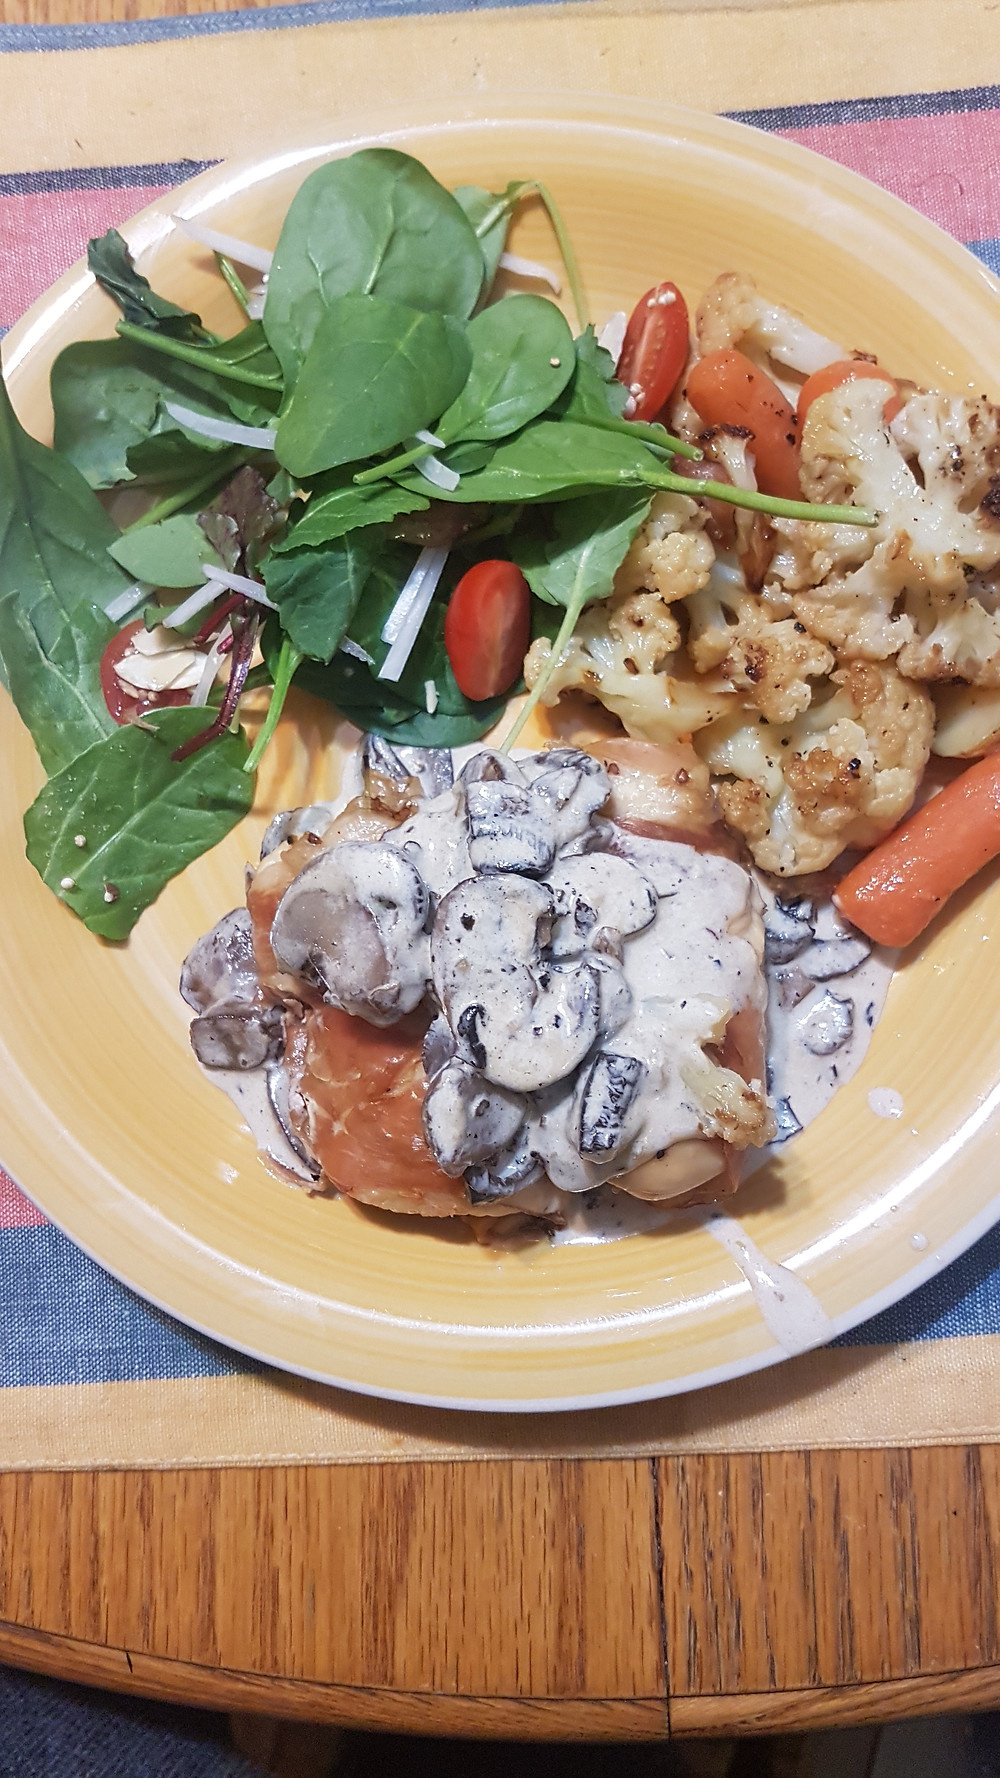 Prosciutto wrapped chicken breasts, in a mushroom cream sauce, with roasted vegetables and a side salad.